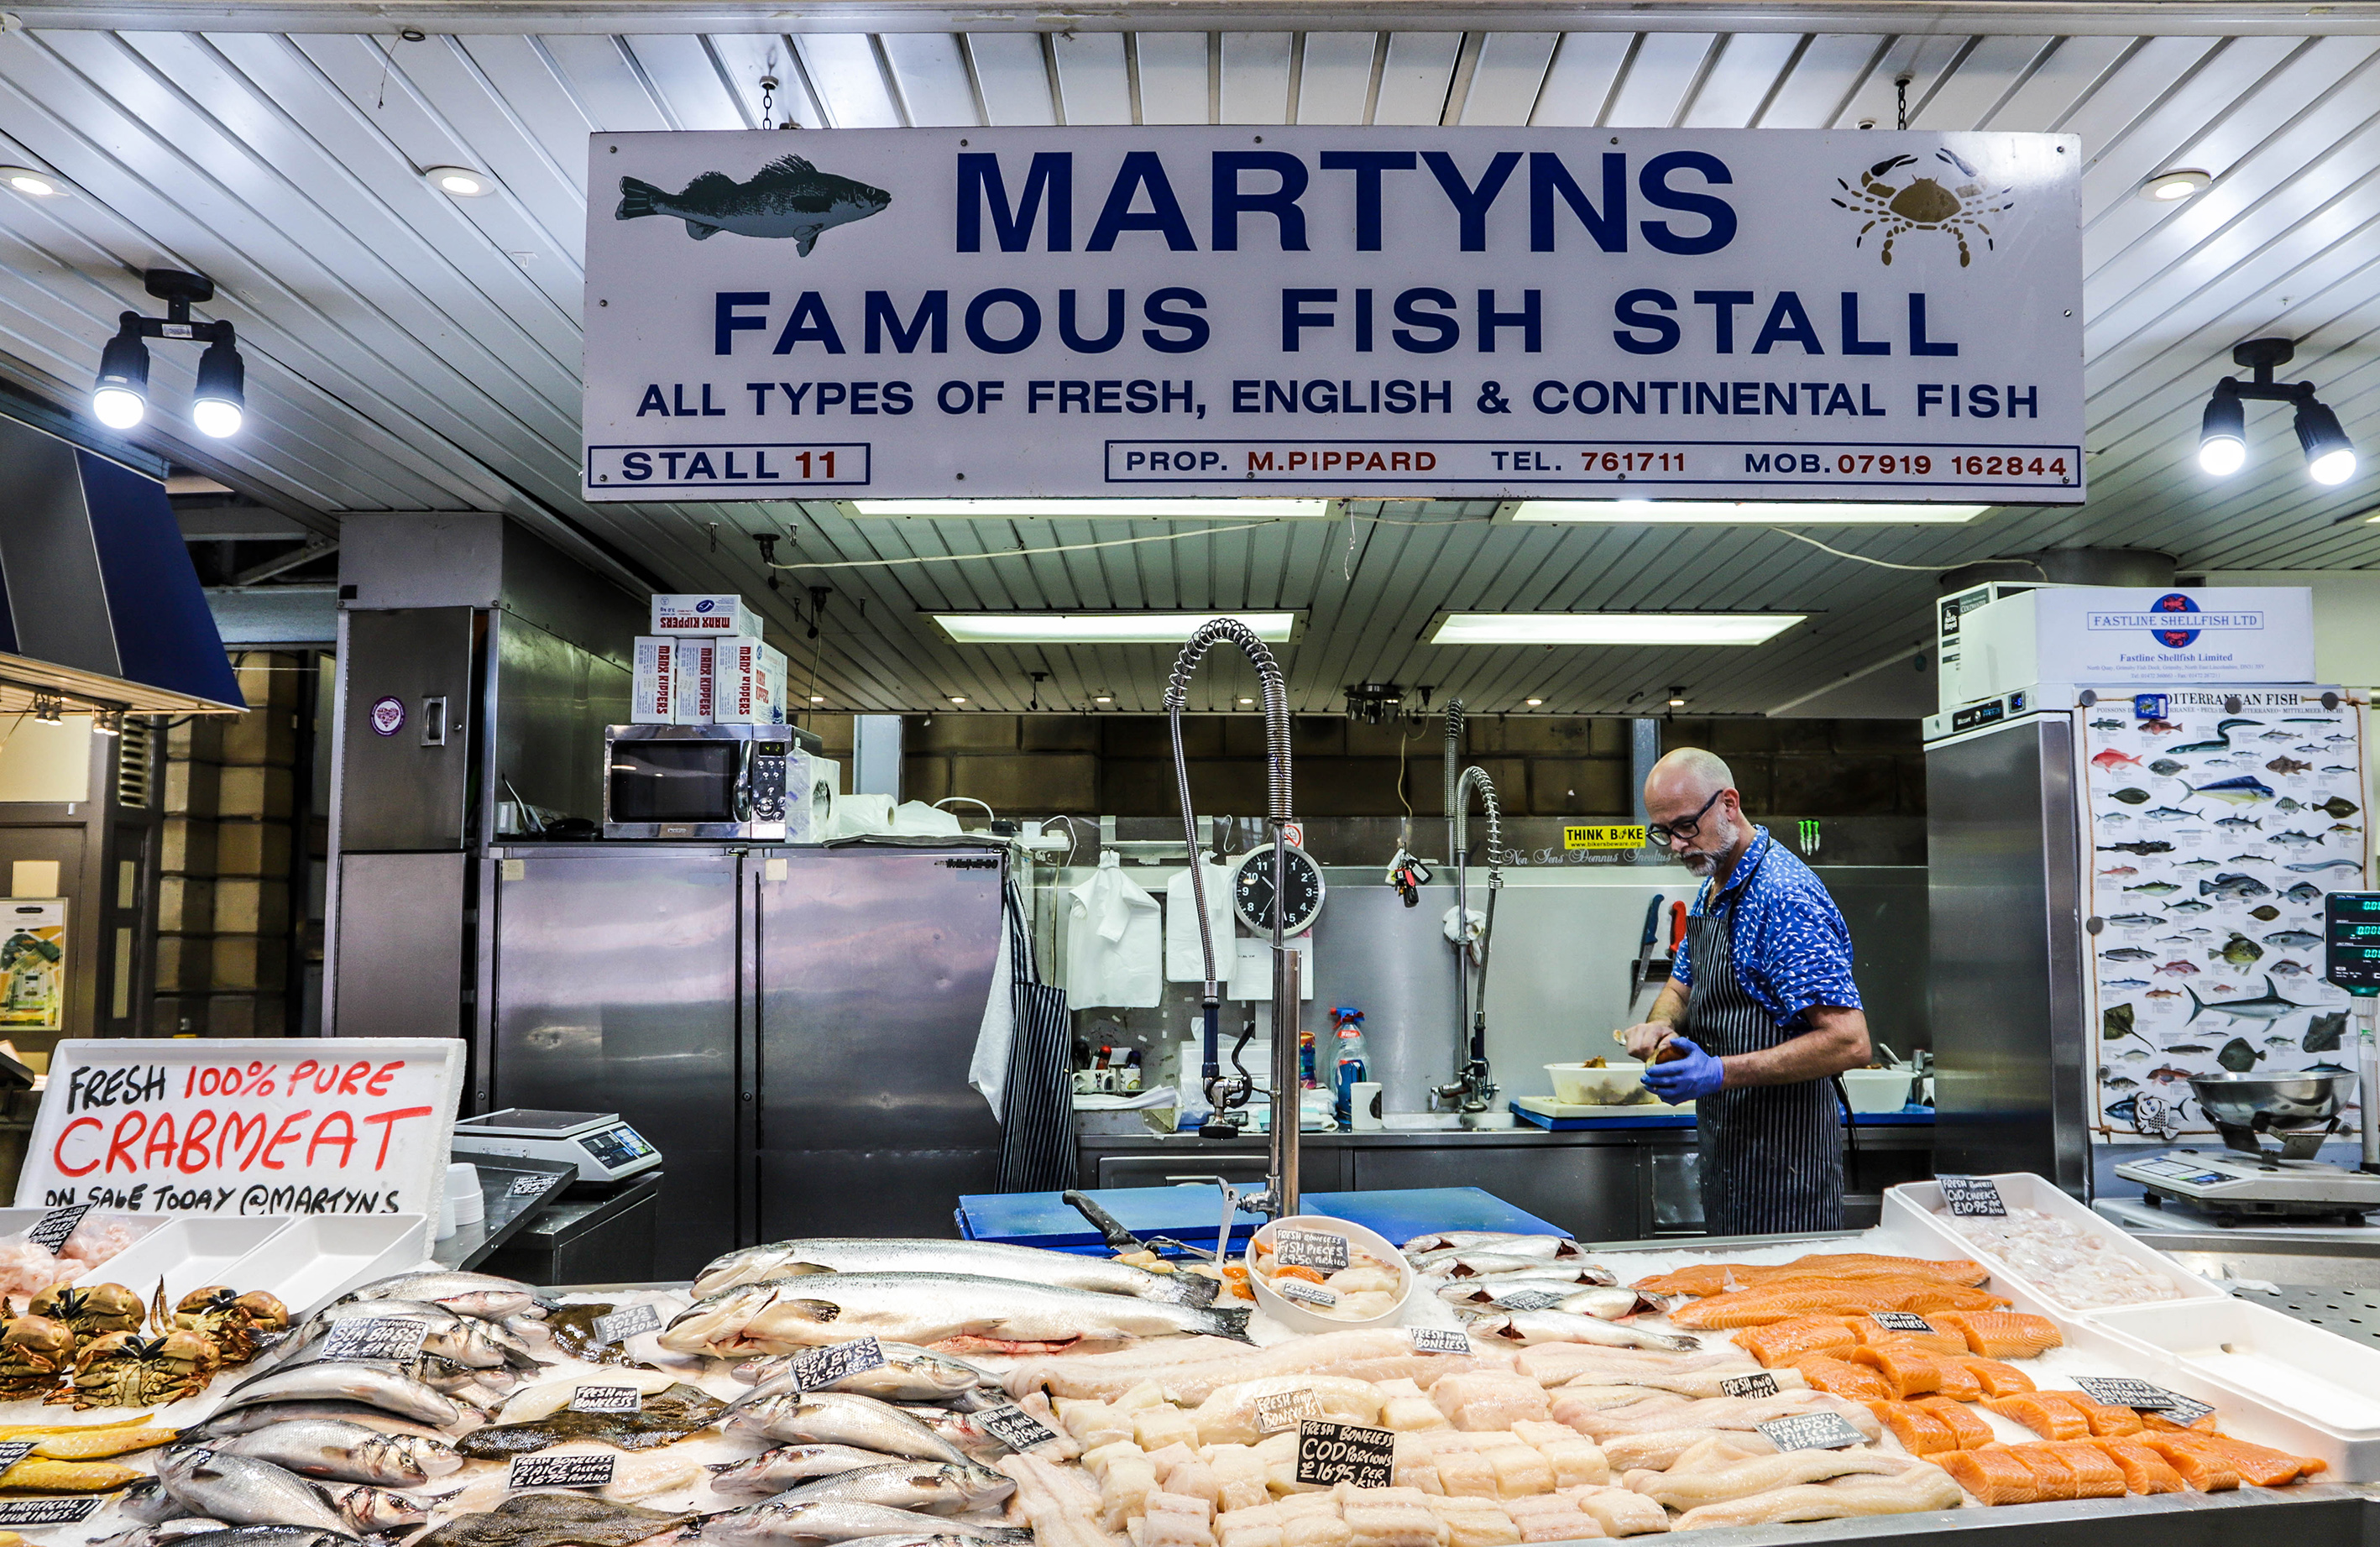 Martyns favourite fish stall